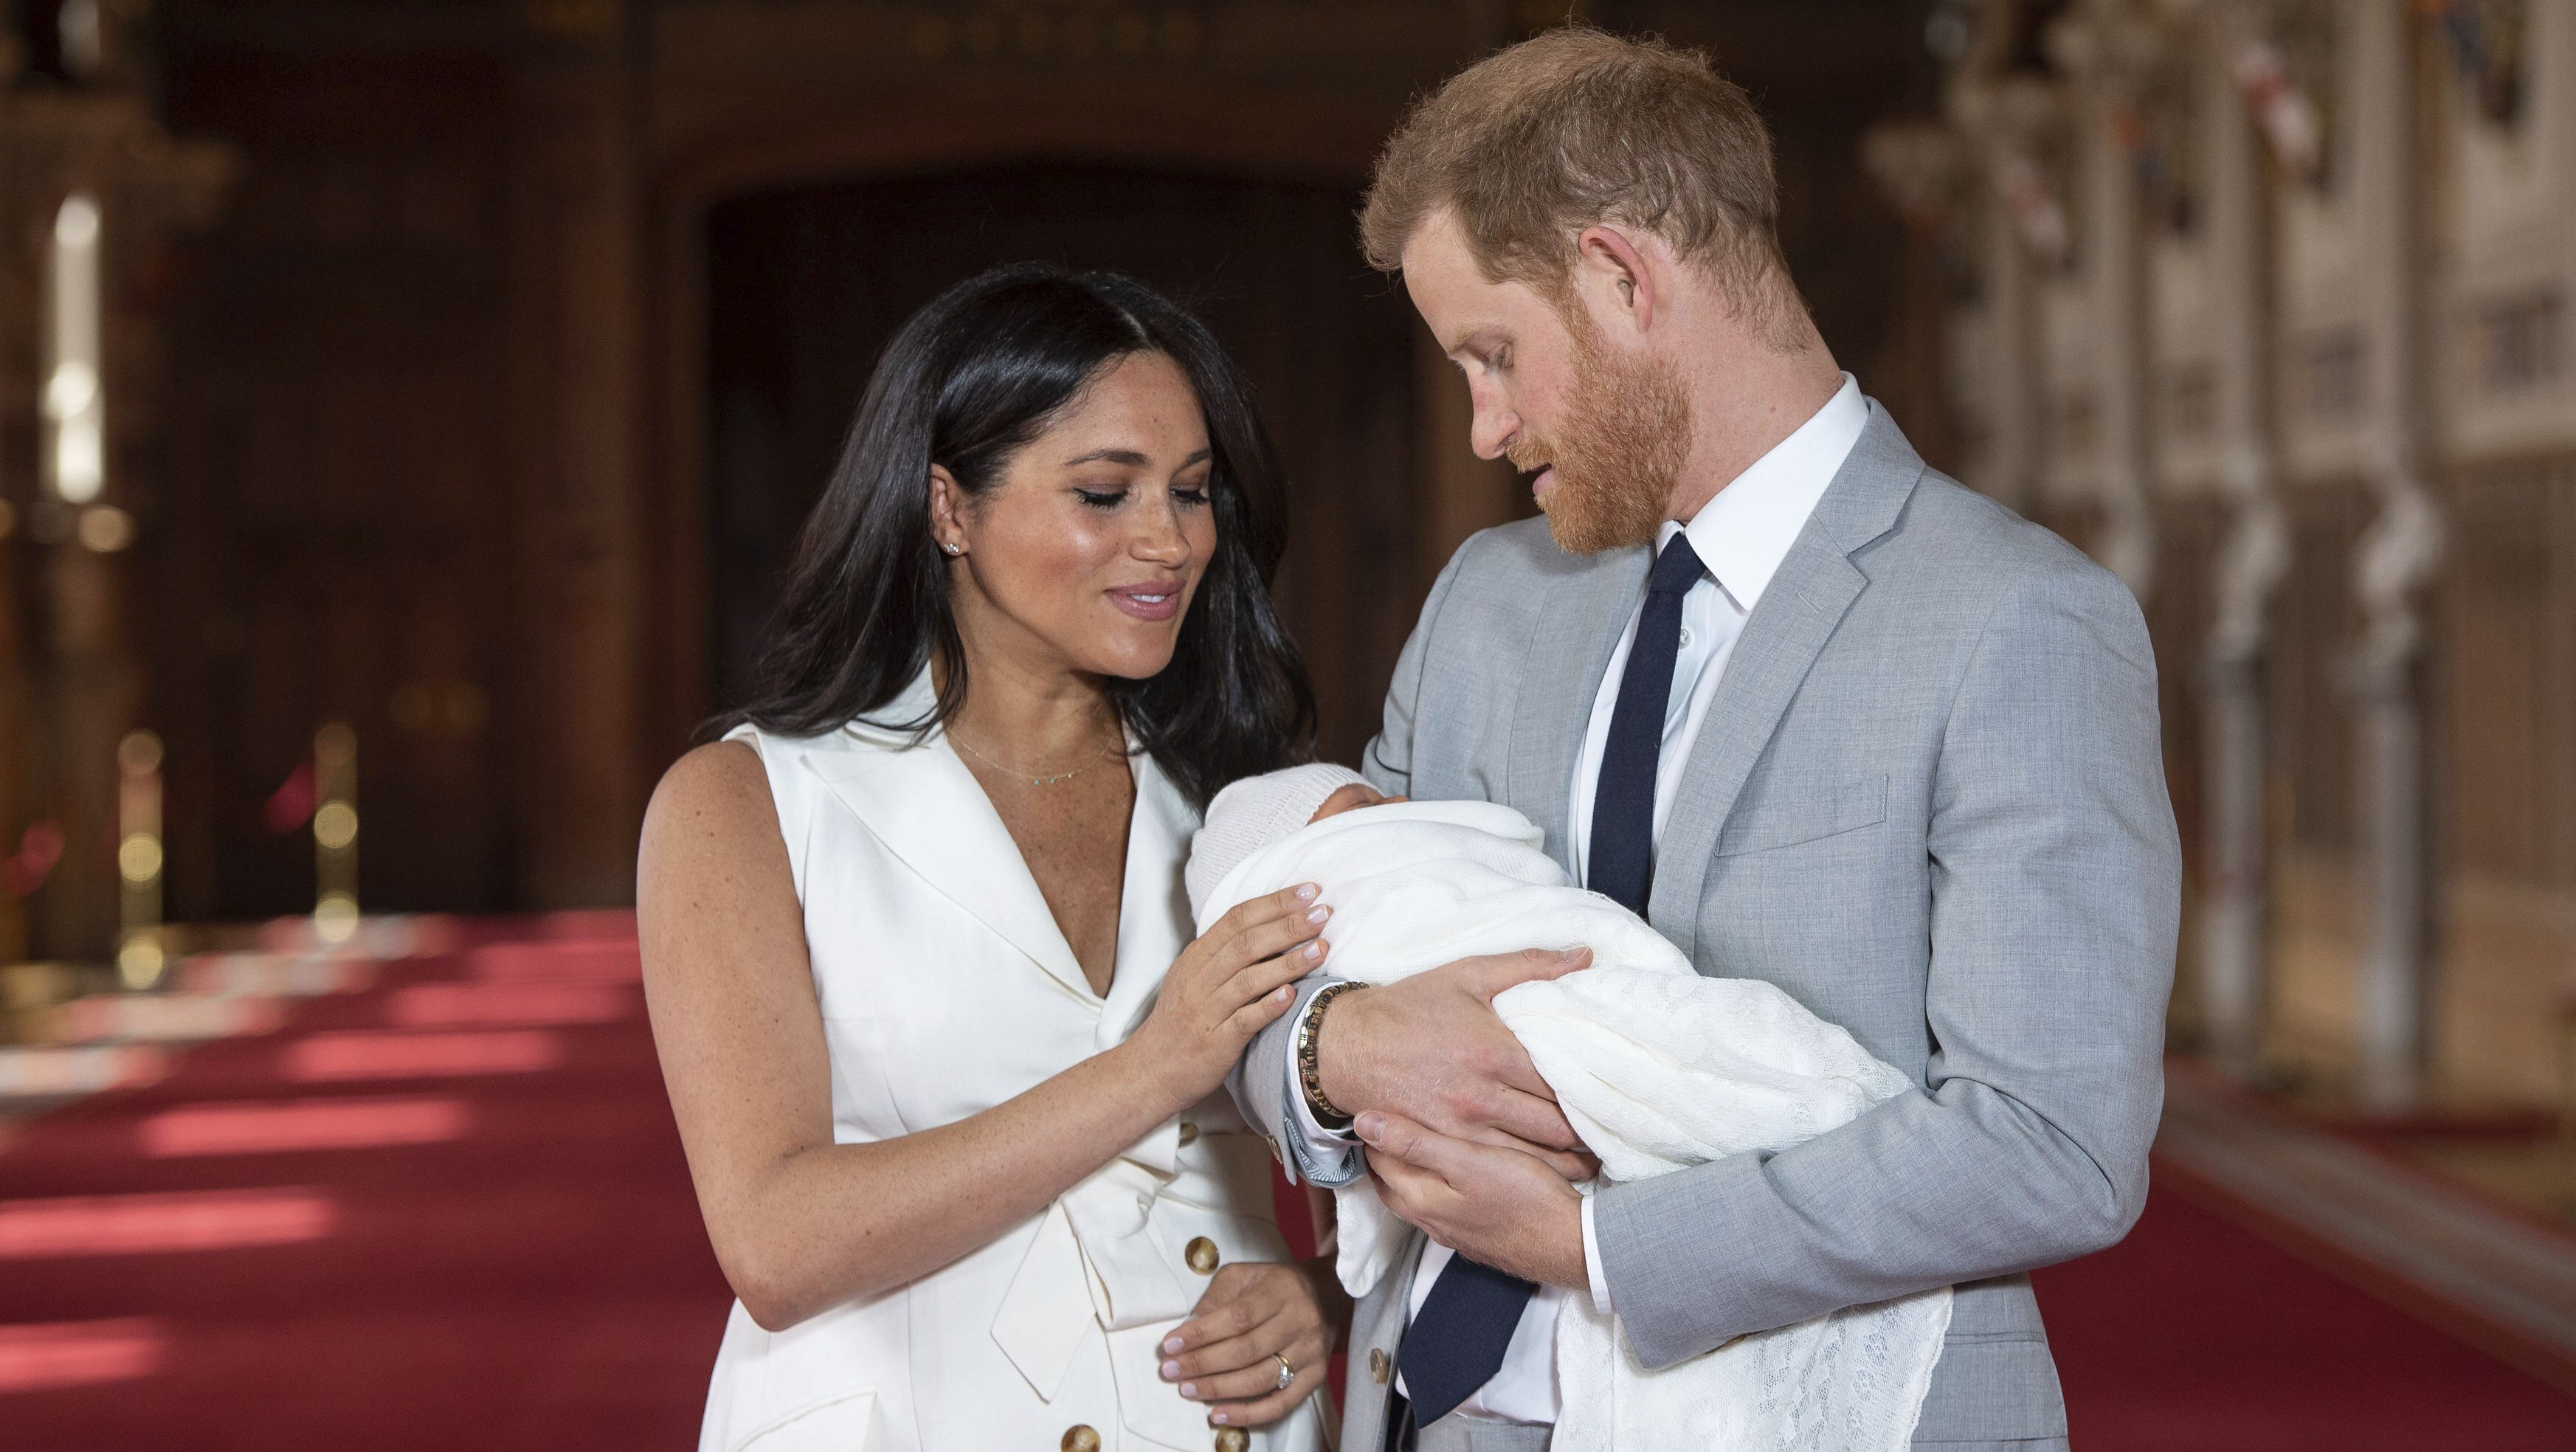 Meghan Markle Reveals She Suffered A Miscarriage In Deeply Personal New York Times Op-Ed